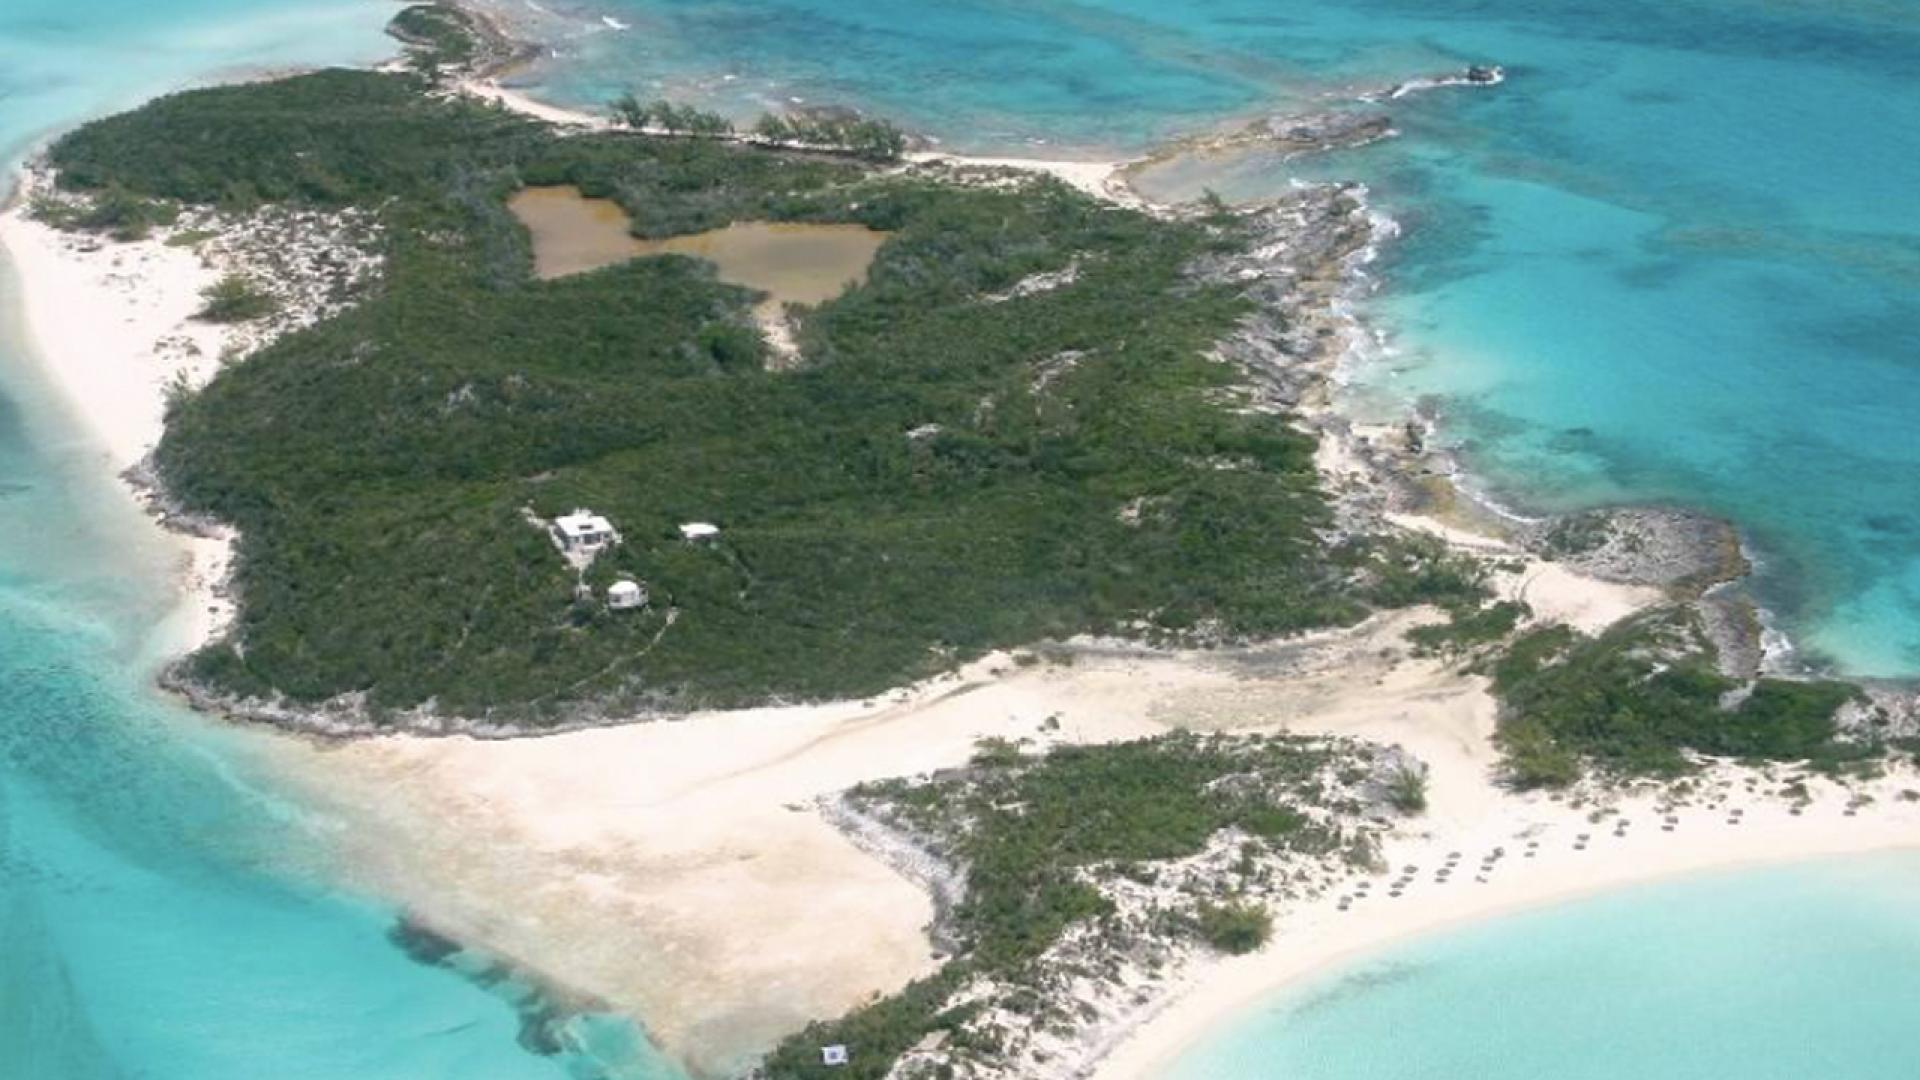 The island used in the Fyre Festival promo can be yours for $12 million.